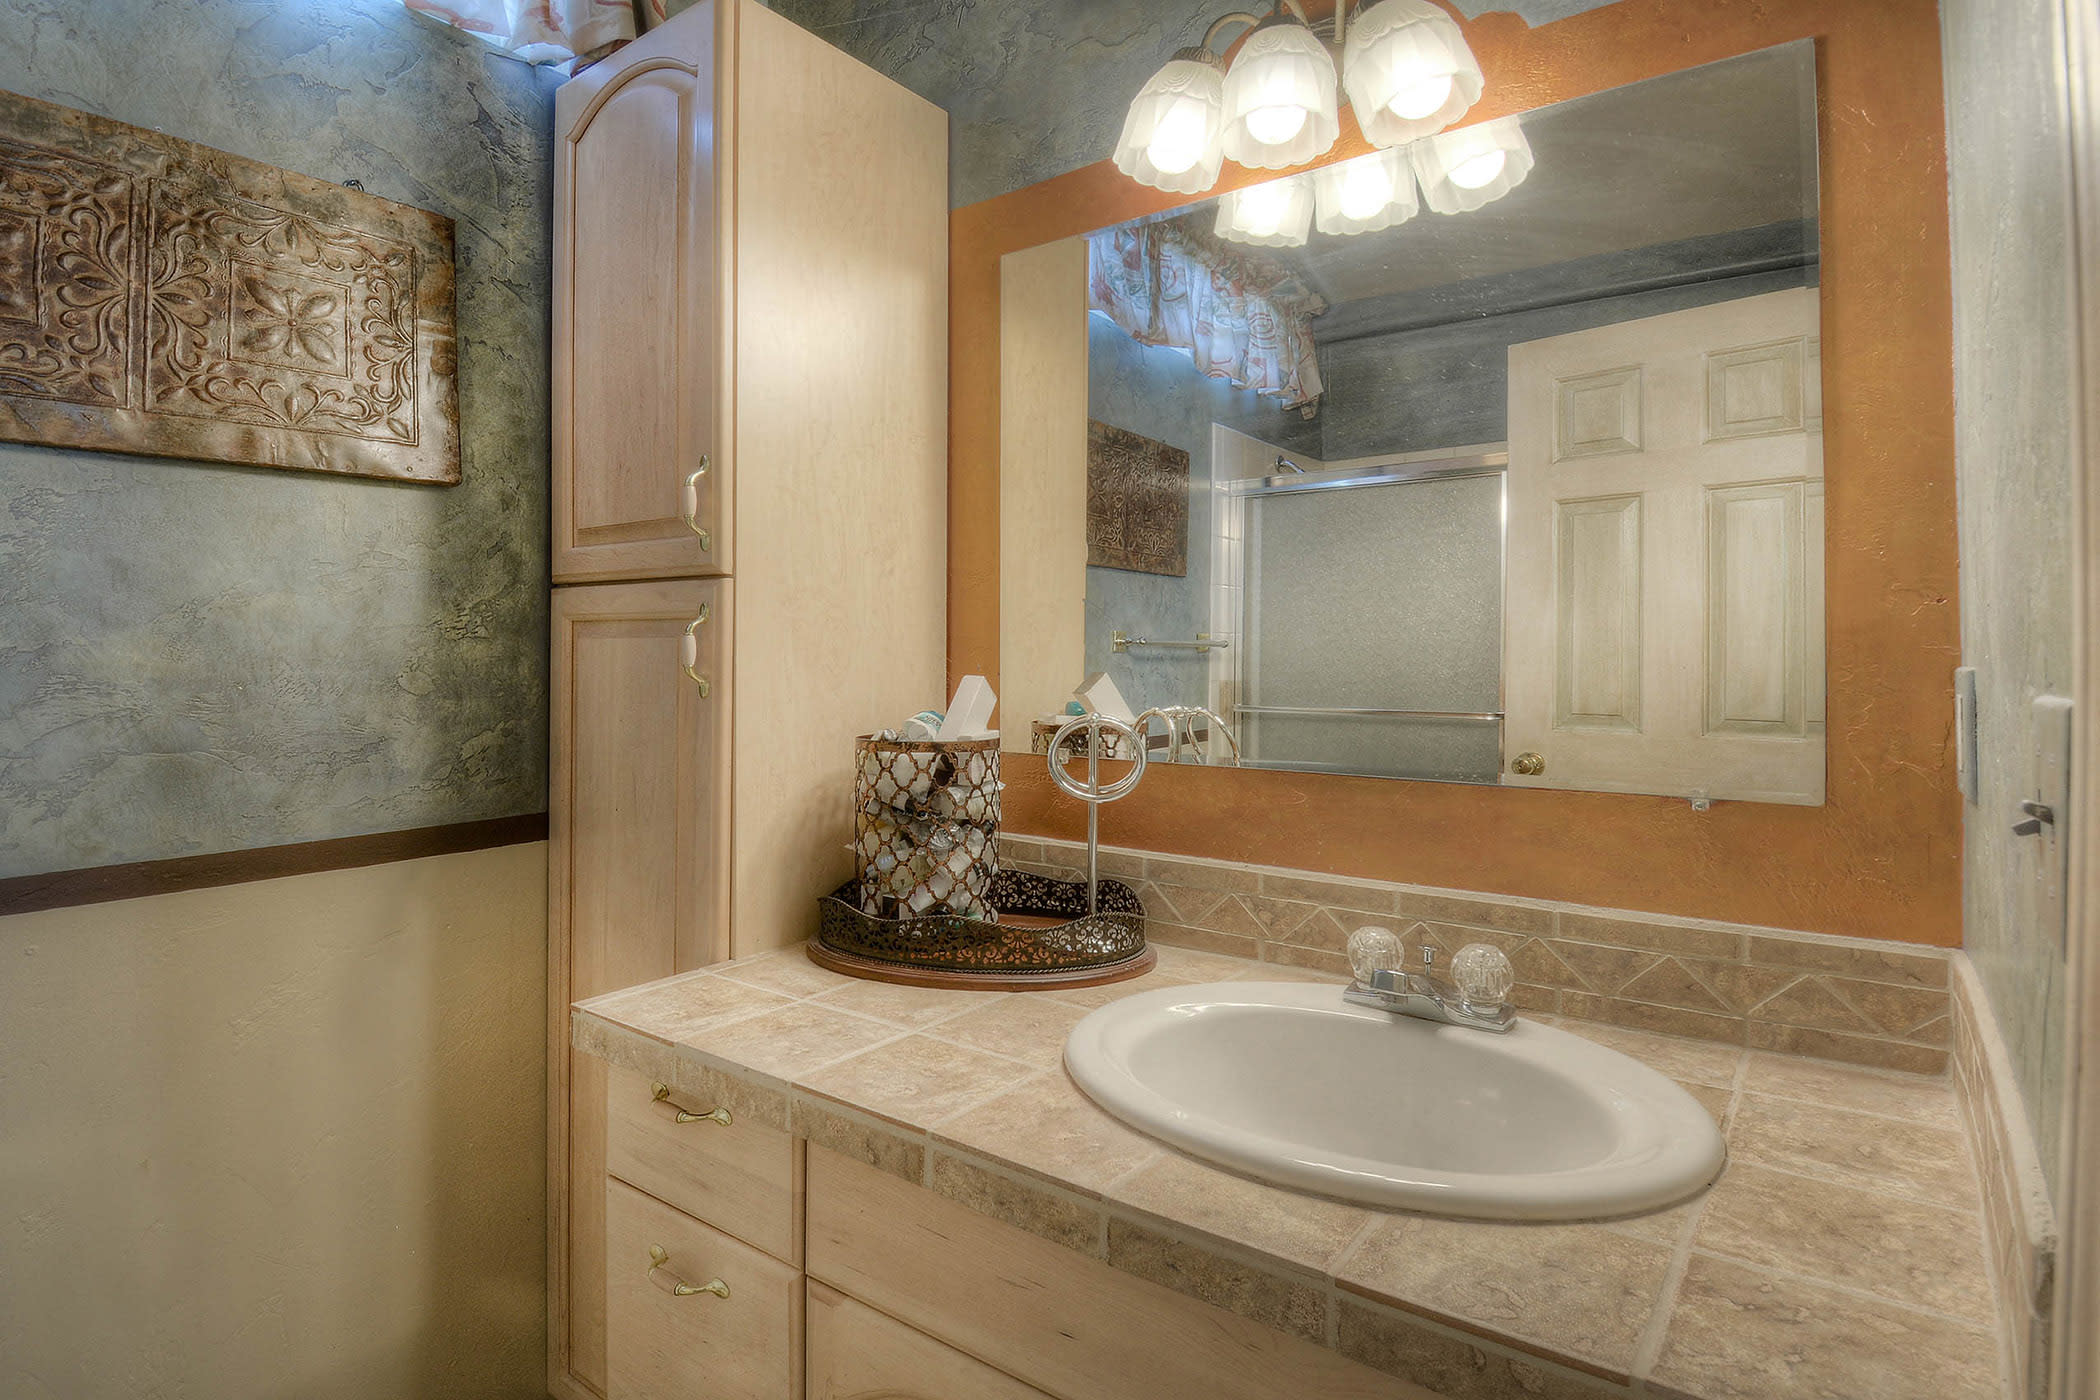 There is 1 pristine bathroom in the home.